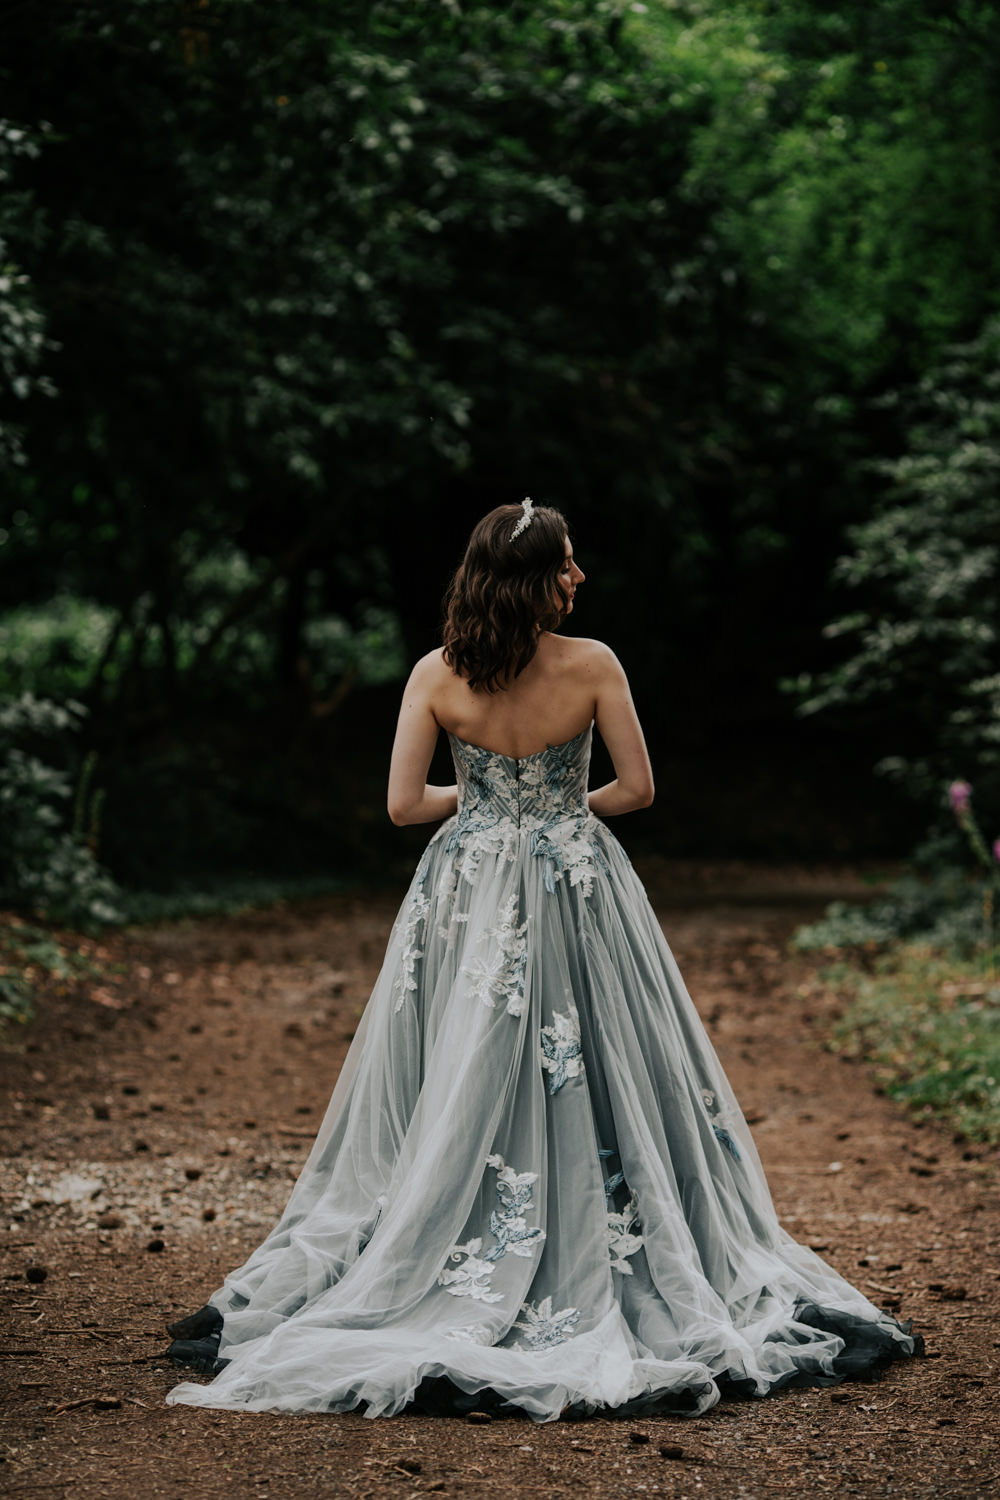 Dress Gown Bride Bridal Black Grey Tulle Strapless Snow White Wedding Inspiration Joasis Photography